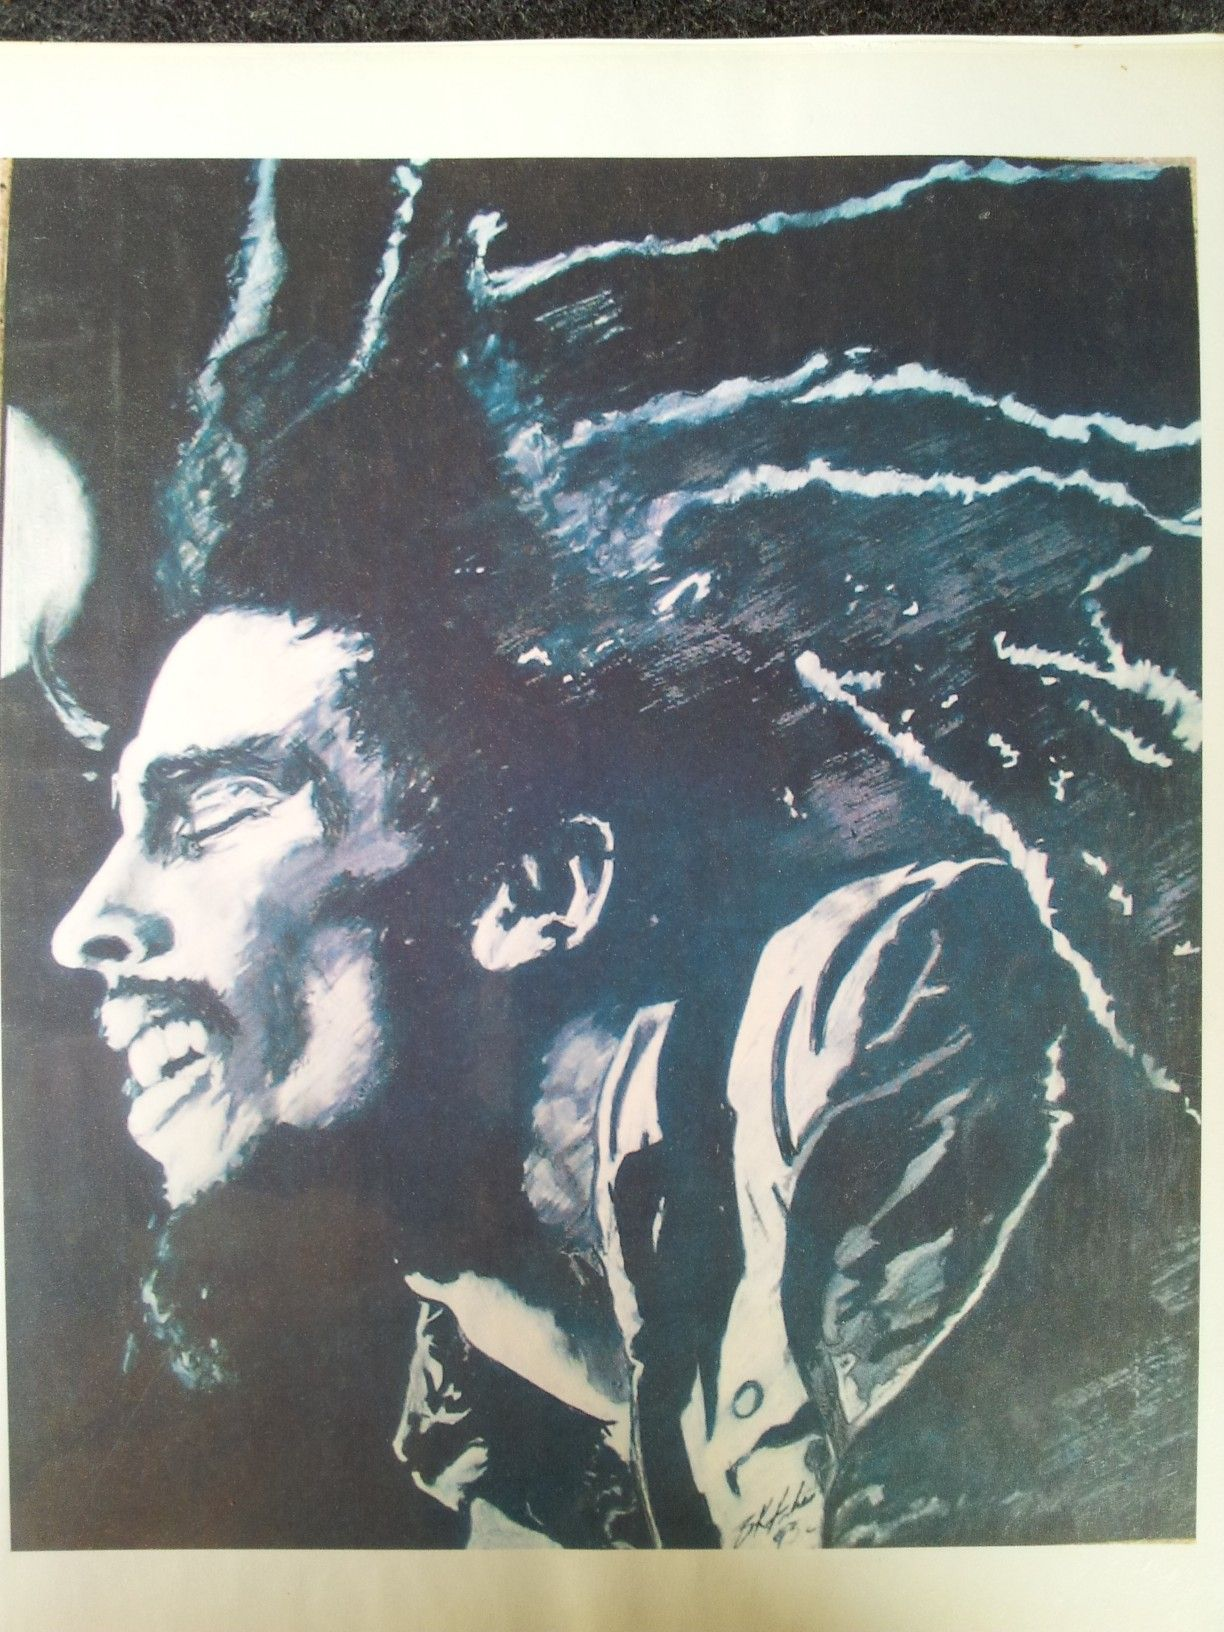 Olds Cool Rasta Style. The Black Hatter. My bio says that ... Respect Hat Marley